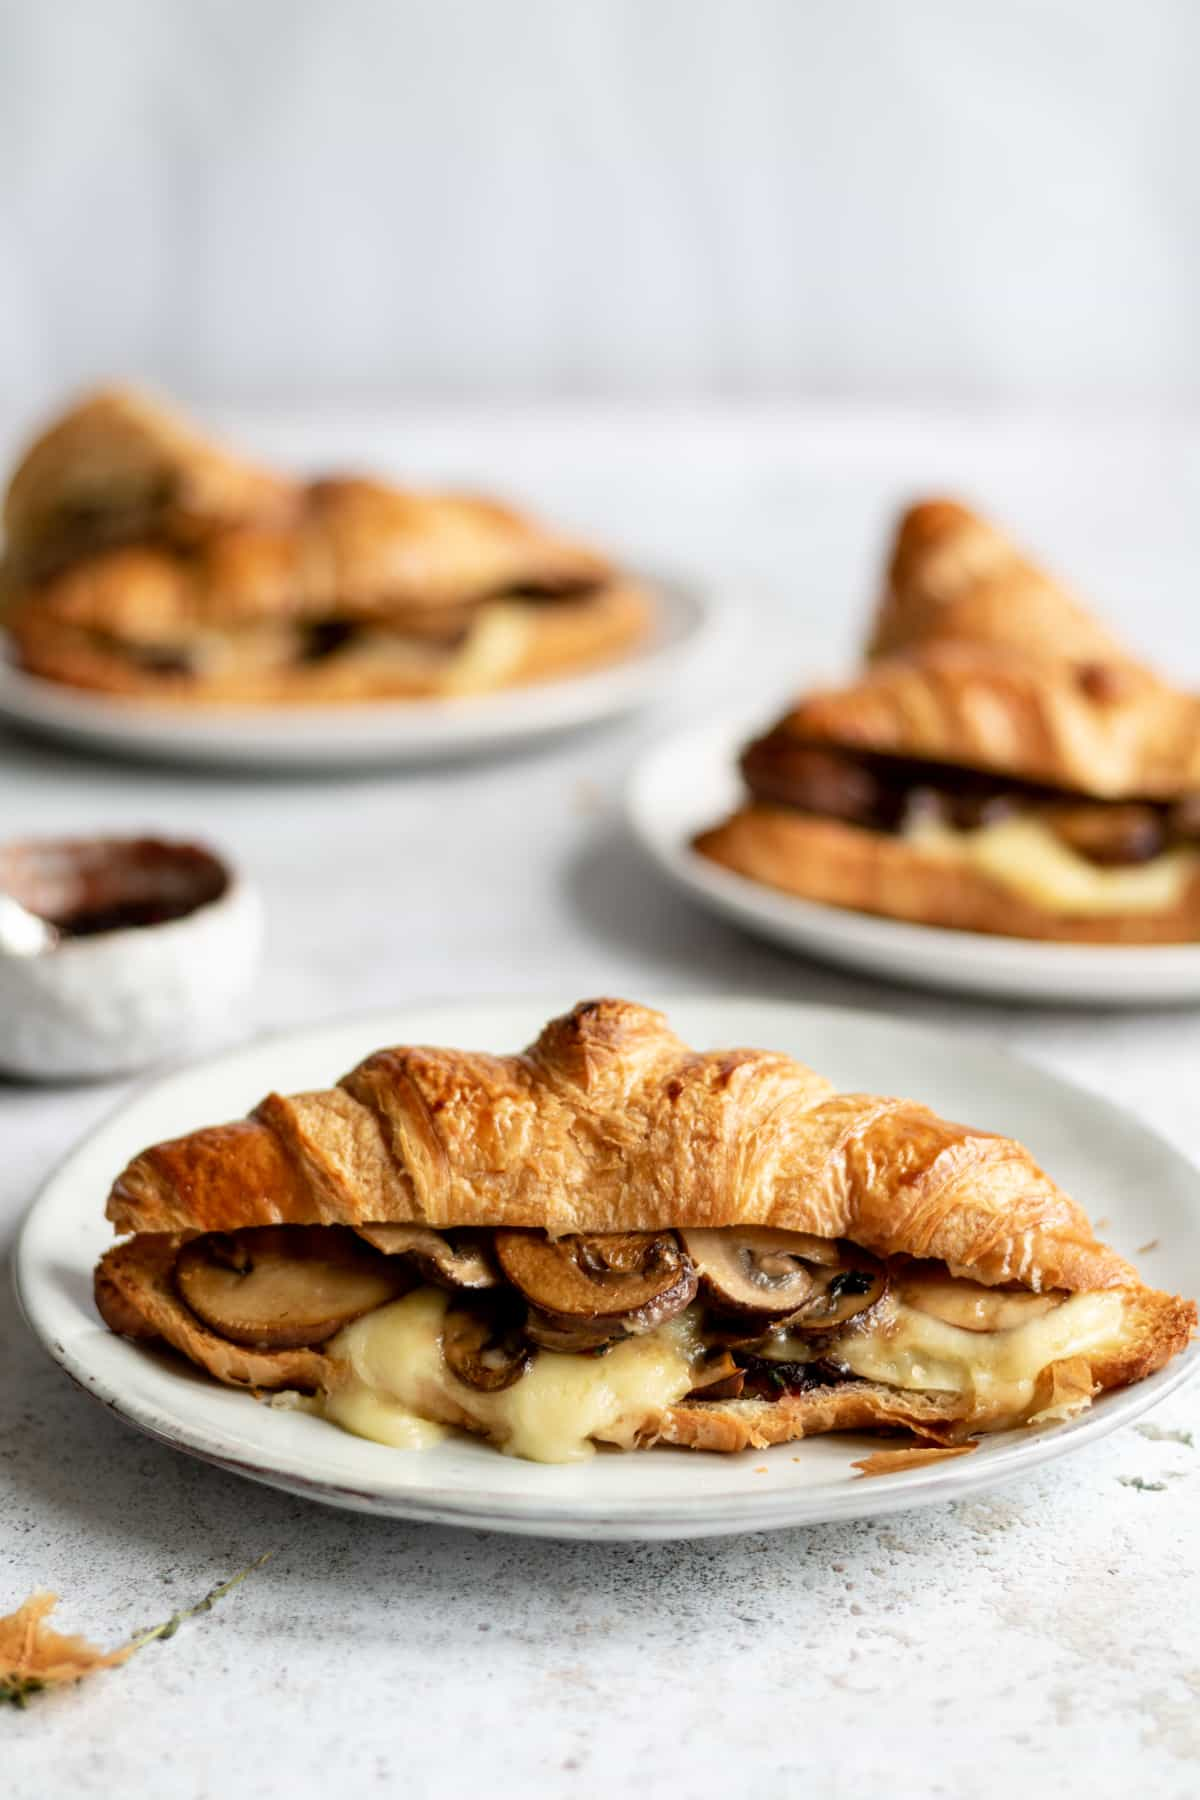 Cheese croissant on plates